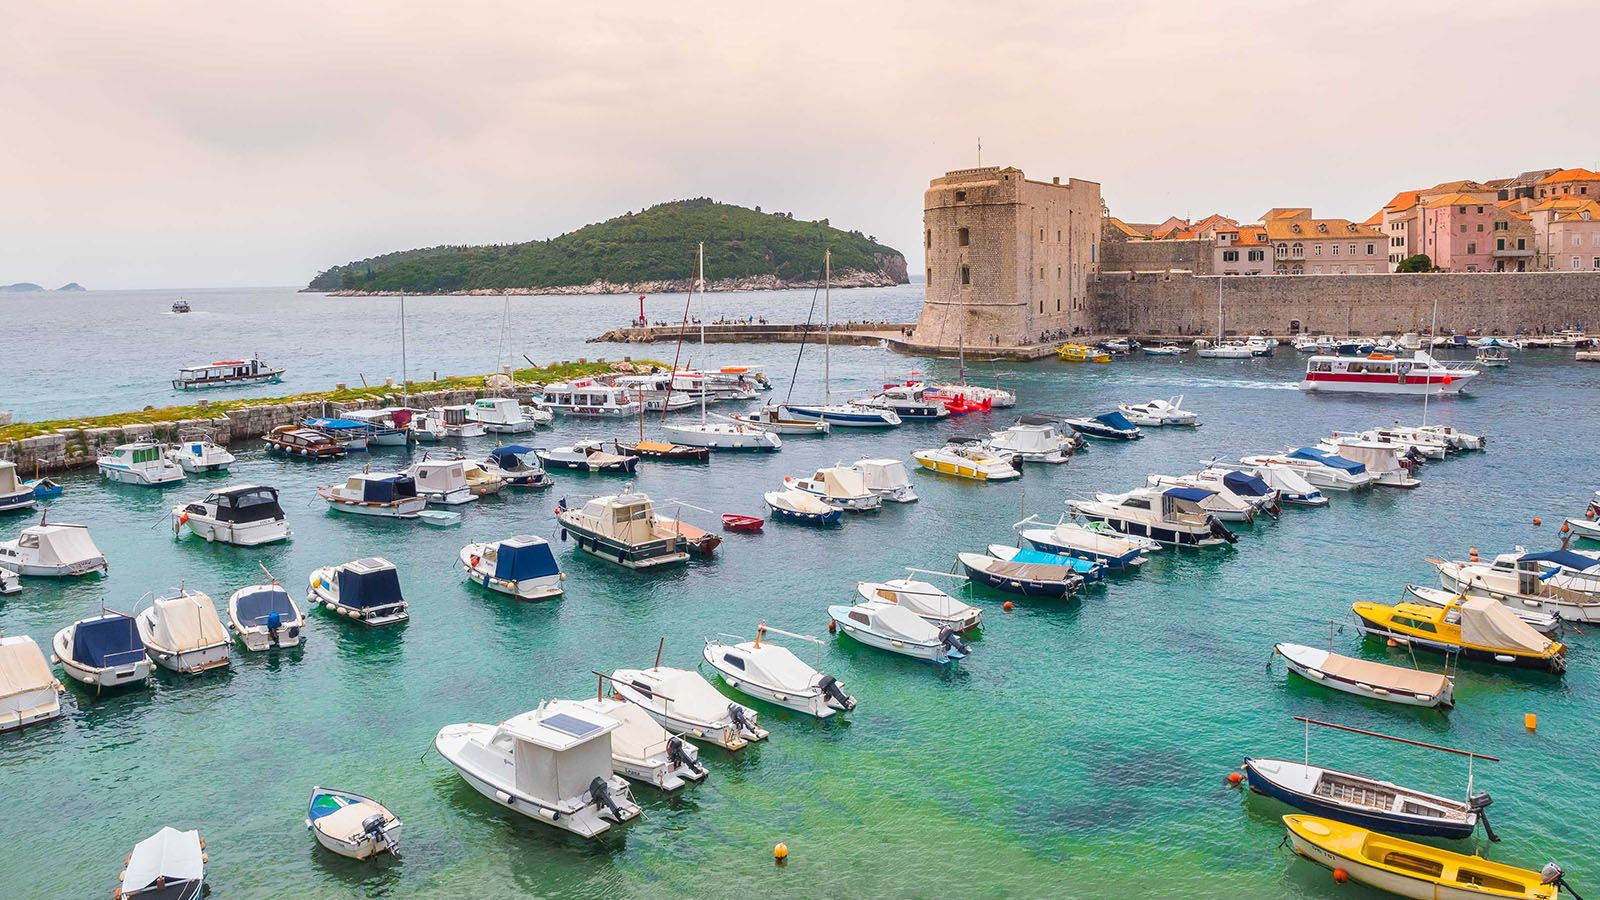 Dubrovnik Port by IG @saaggo